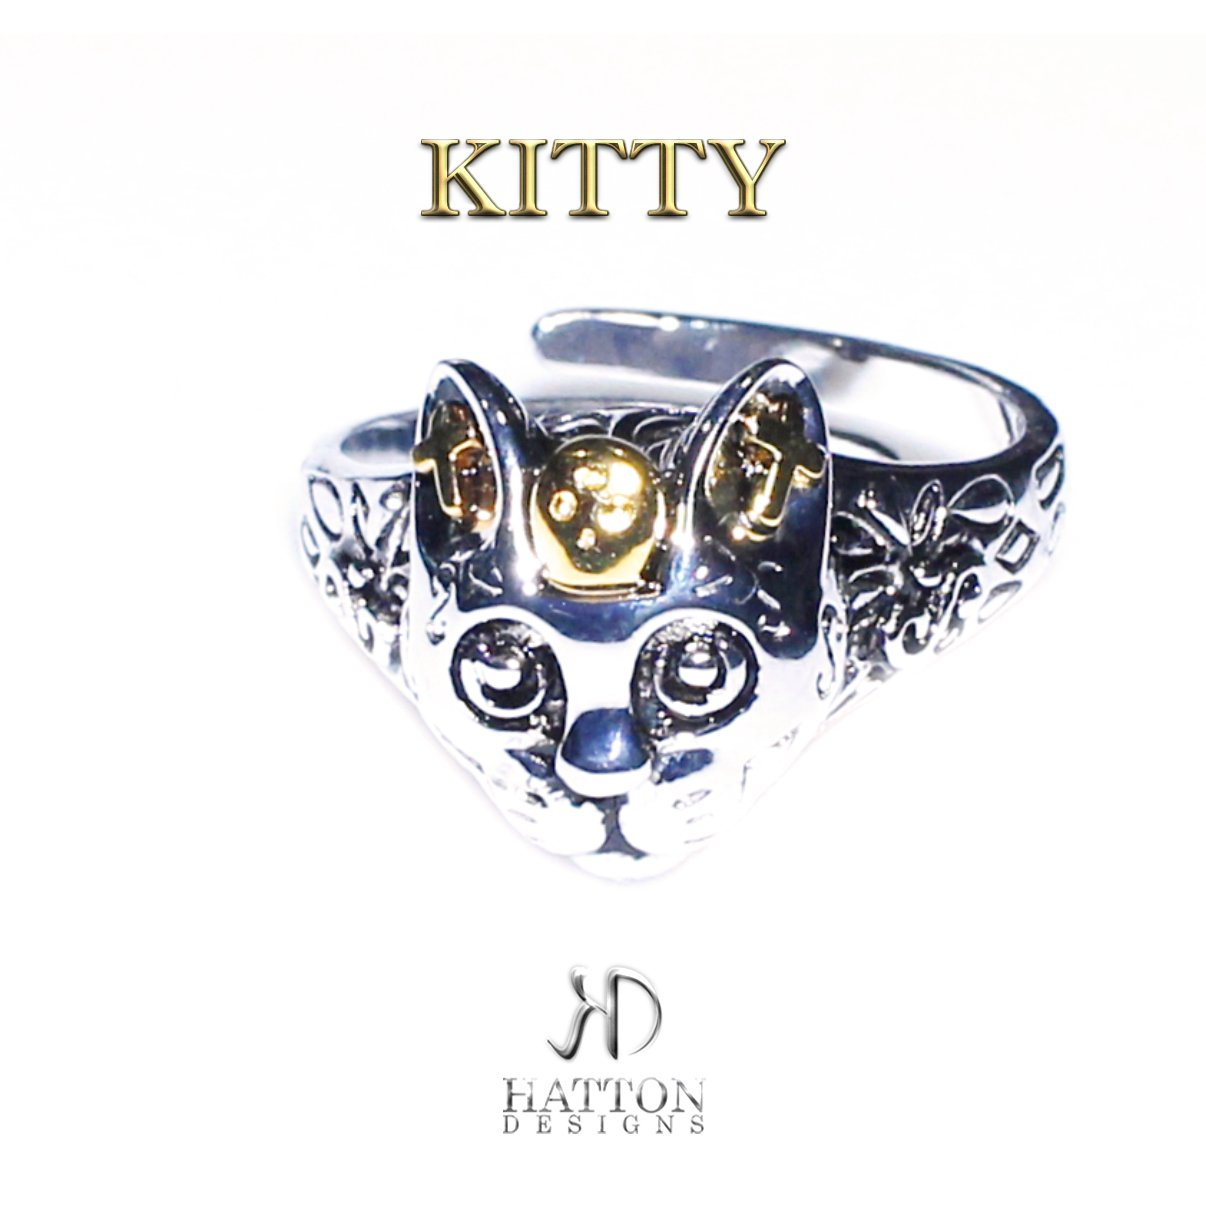 HATTON DESIGNS 'KITTY' Stainless Steel ring